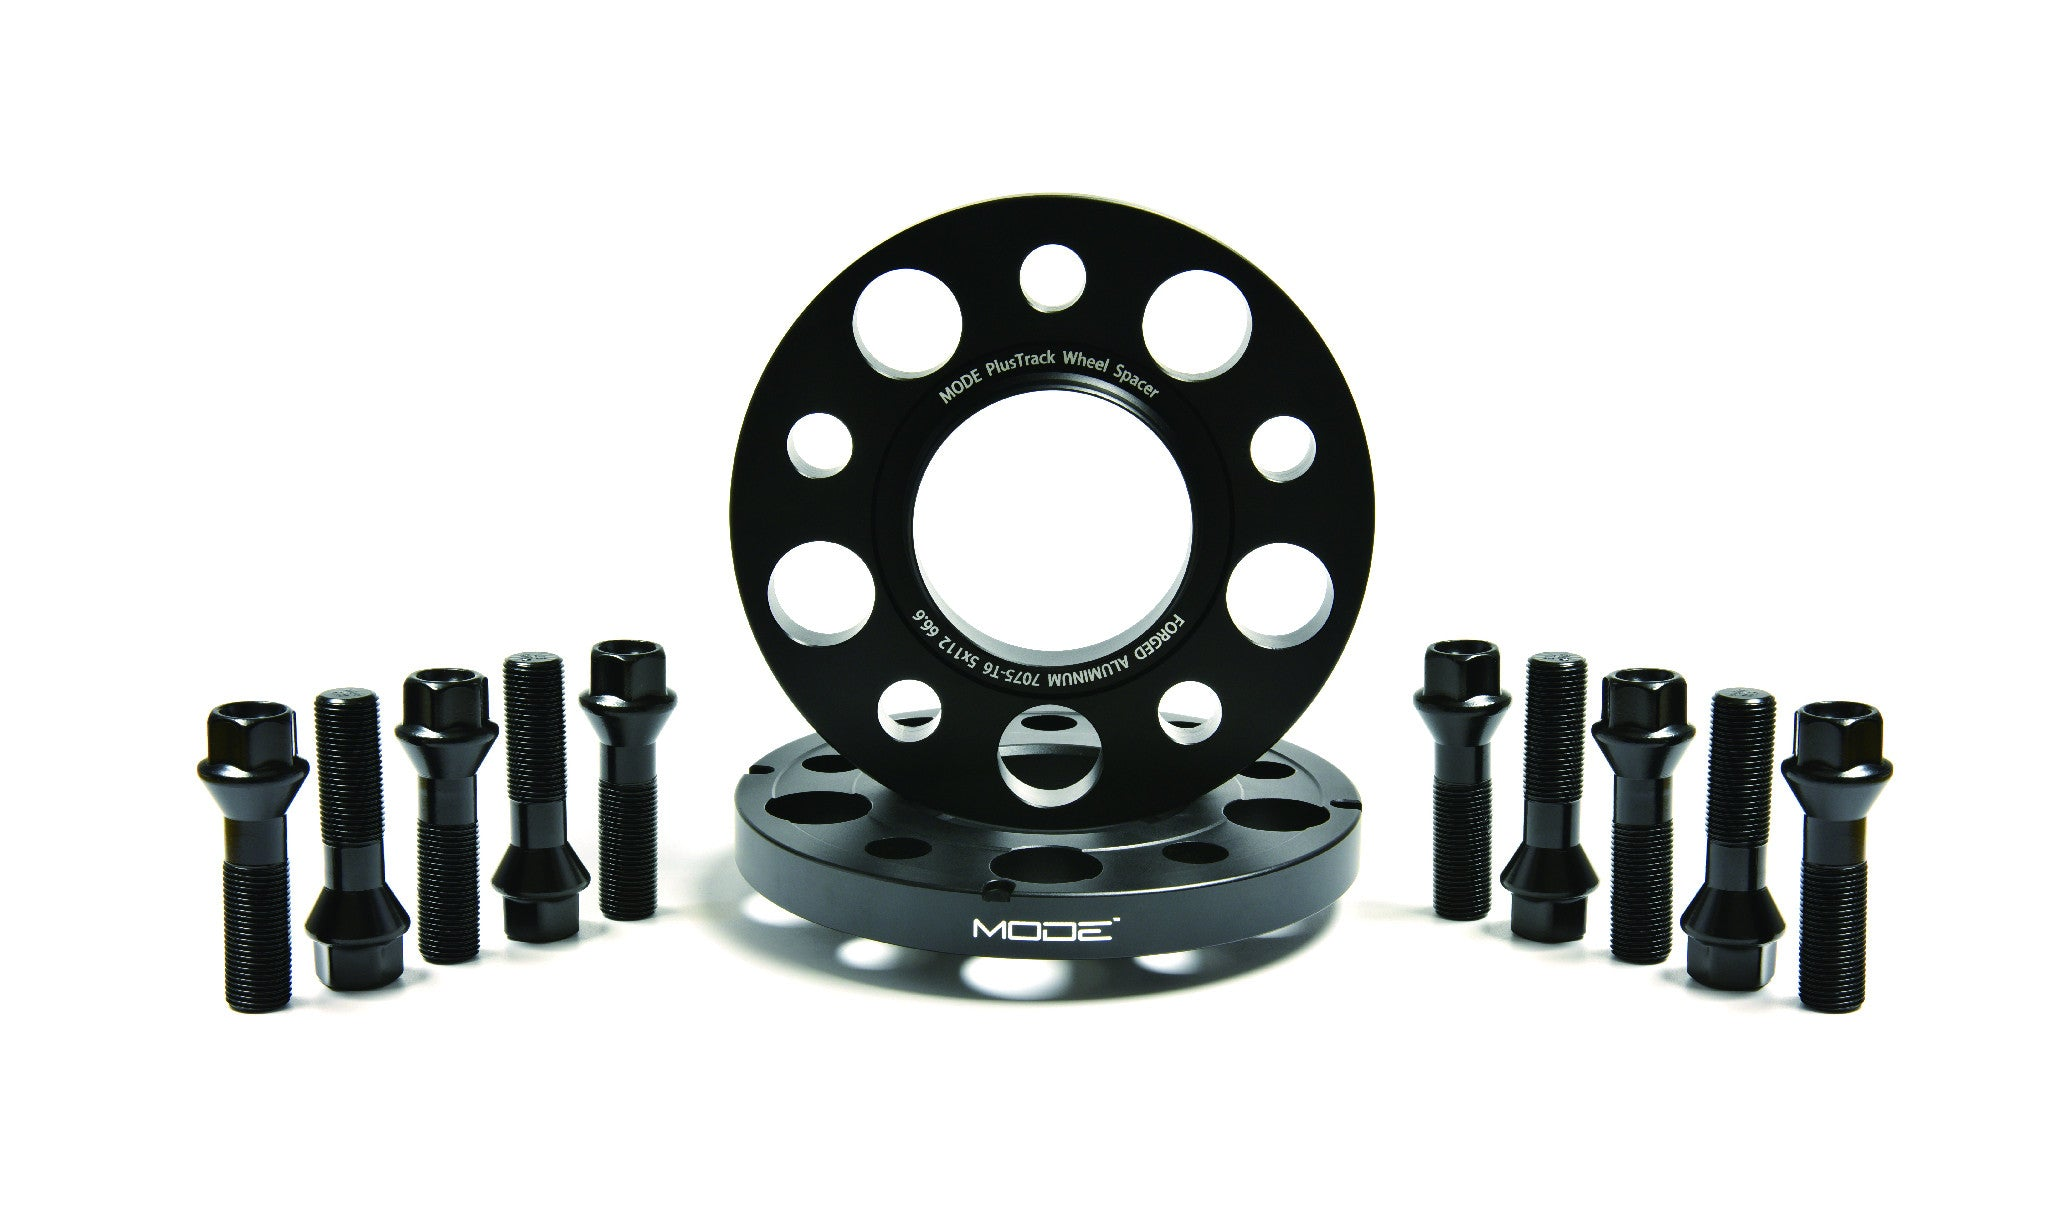 MODE PlusTrack Wheel Spacer Kit 12.5mm BMW (G-Series) - MODE Auto Concepts